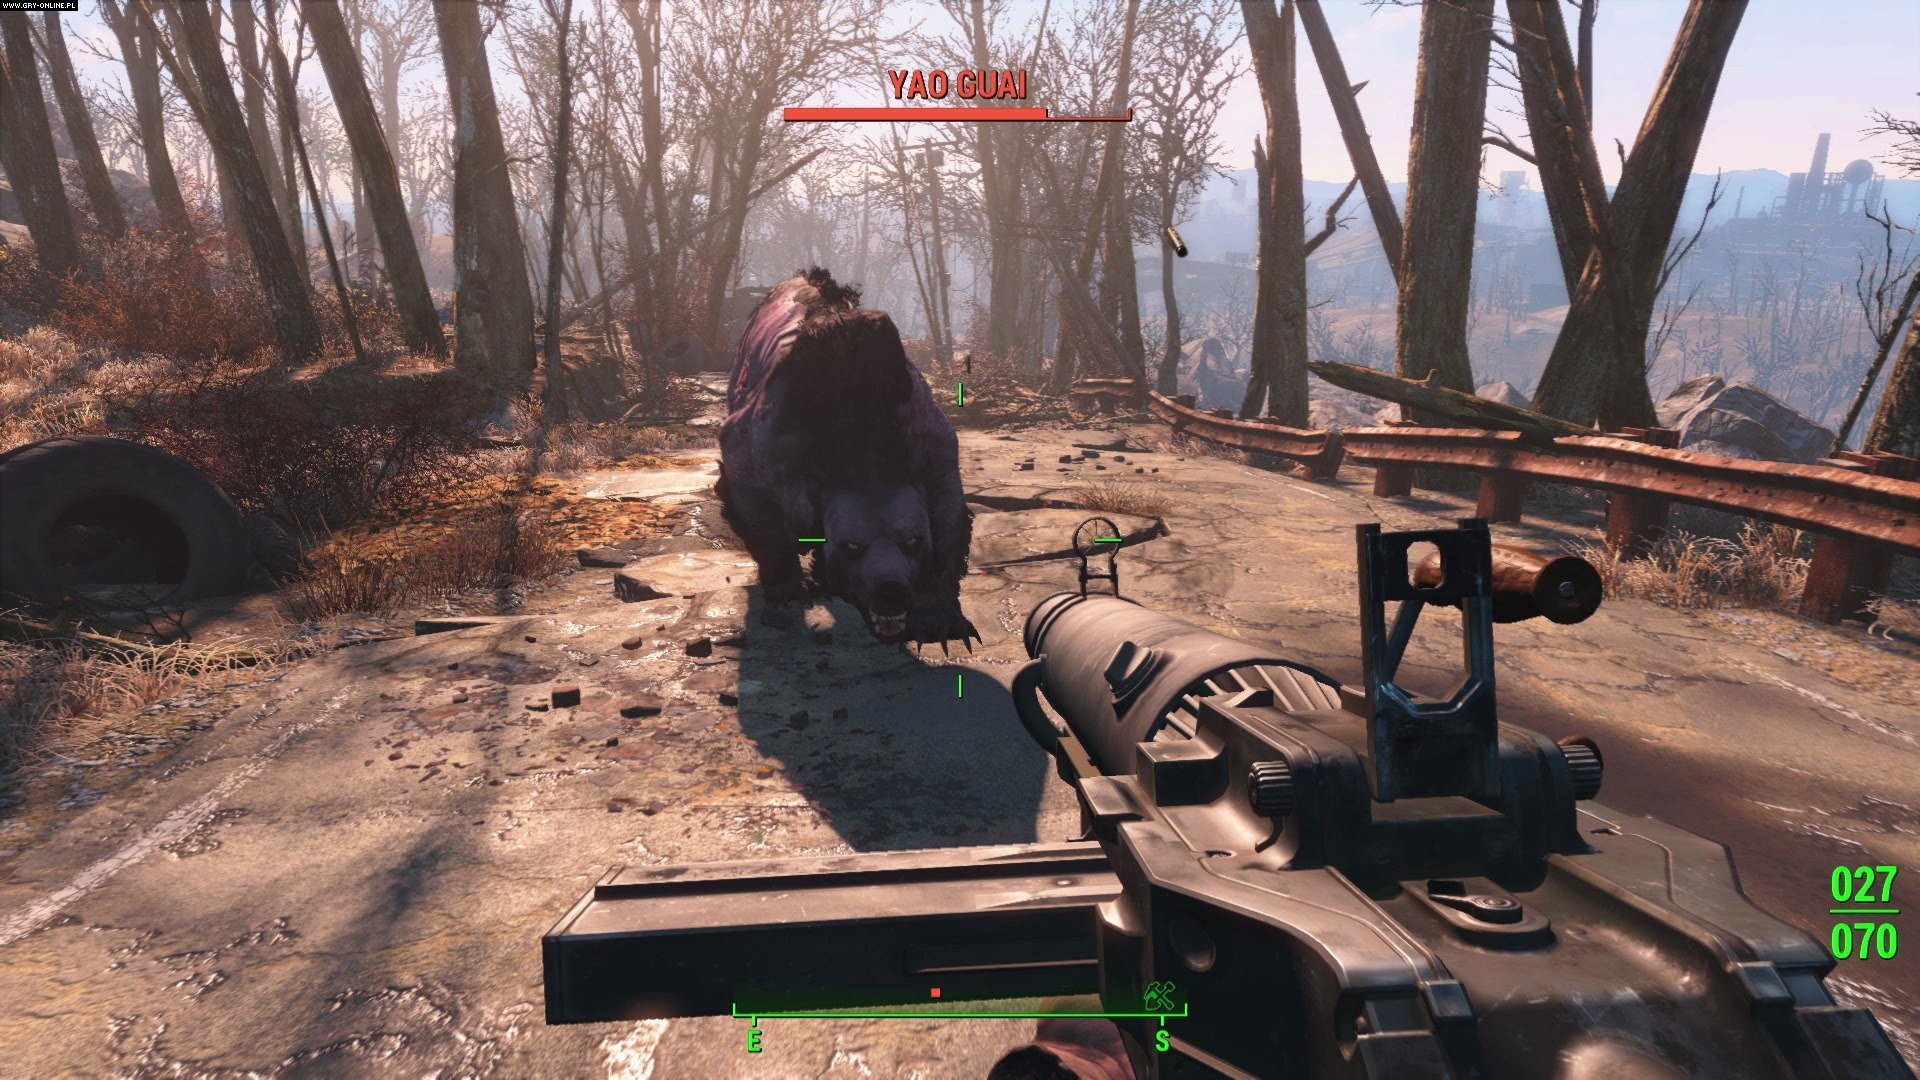 Fallout 4 PC, PS4, XONE Games Image 64/109, Bethesda Softworks